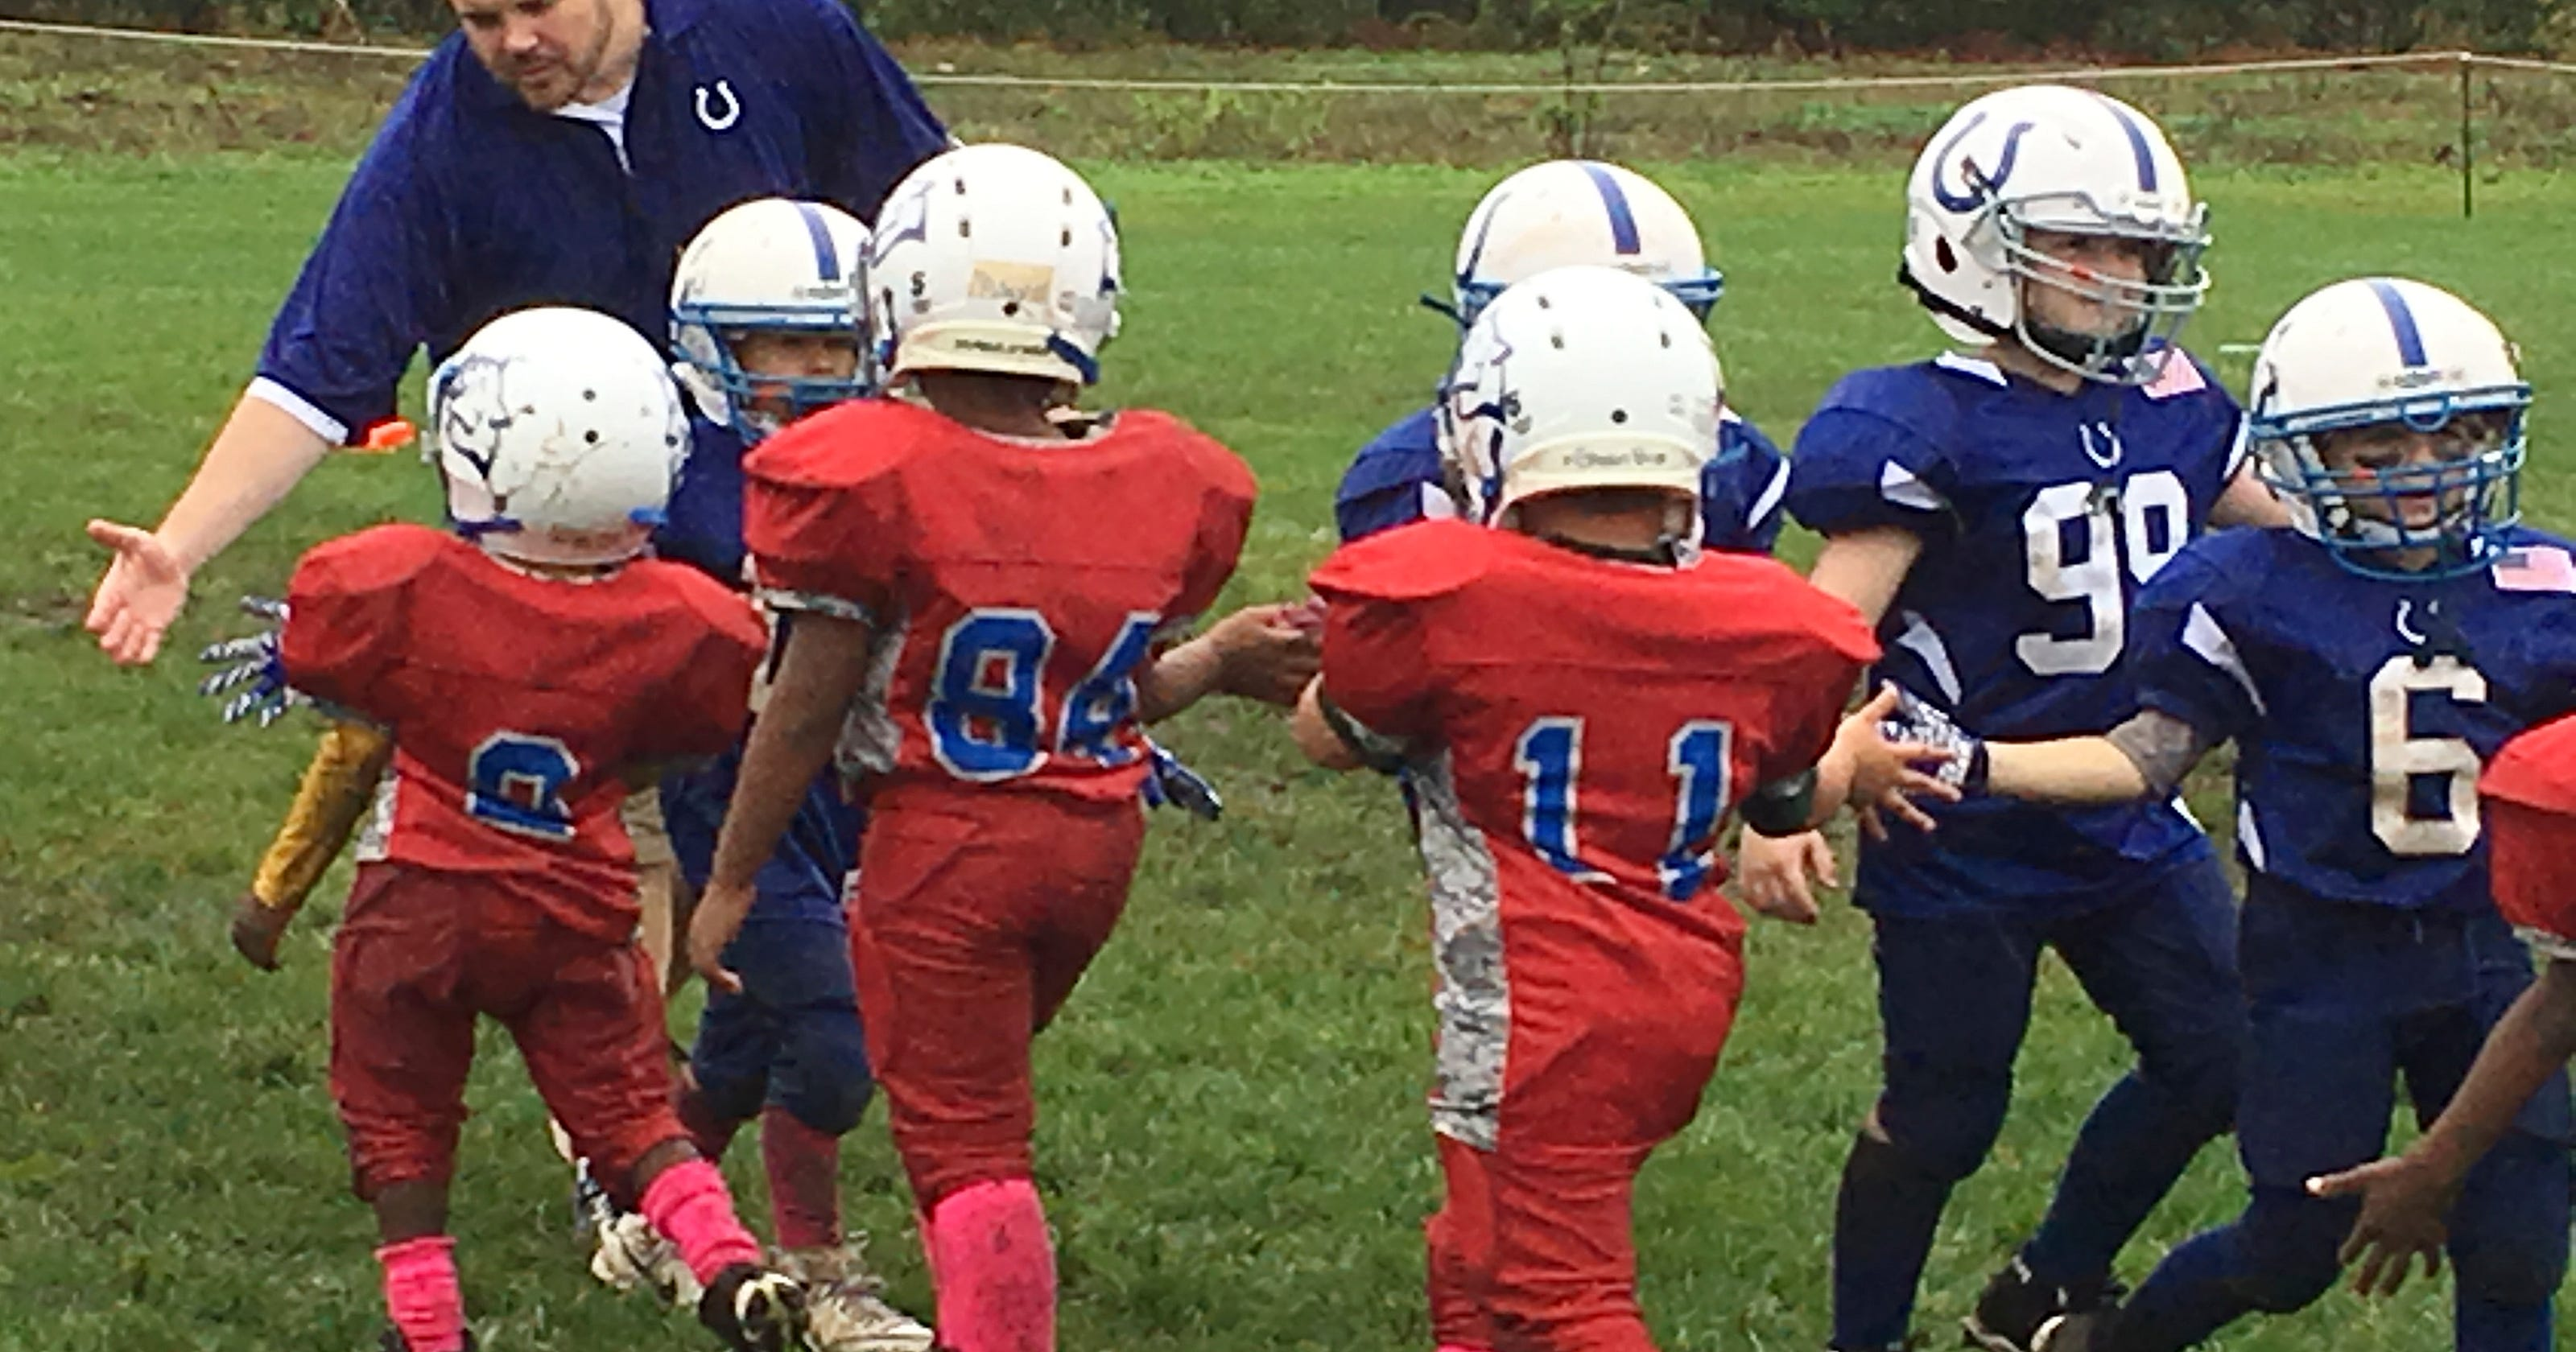 Youth Tackle Football Participation >> New Version Of Football Targets Falling Youth Participation